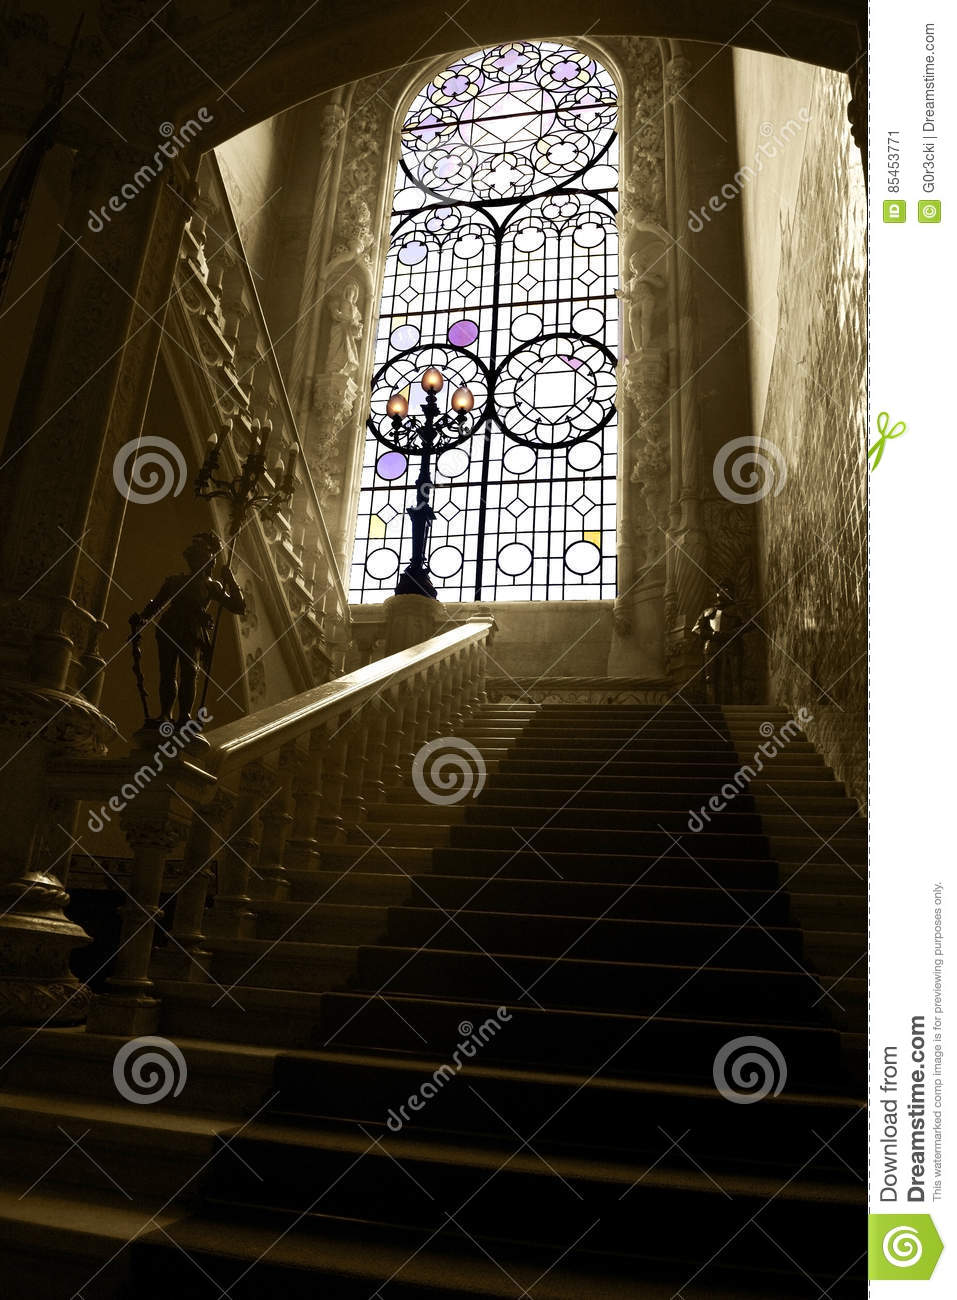 Bussaco Stained Glass Window and Palace Marble Staircase, Palace Interior, Old Luxury